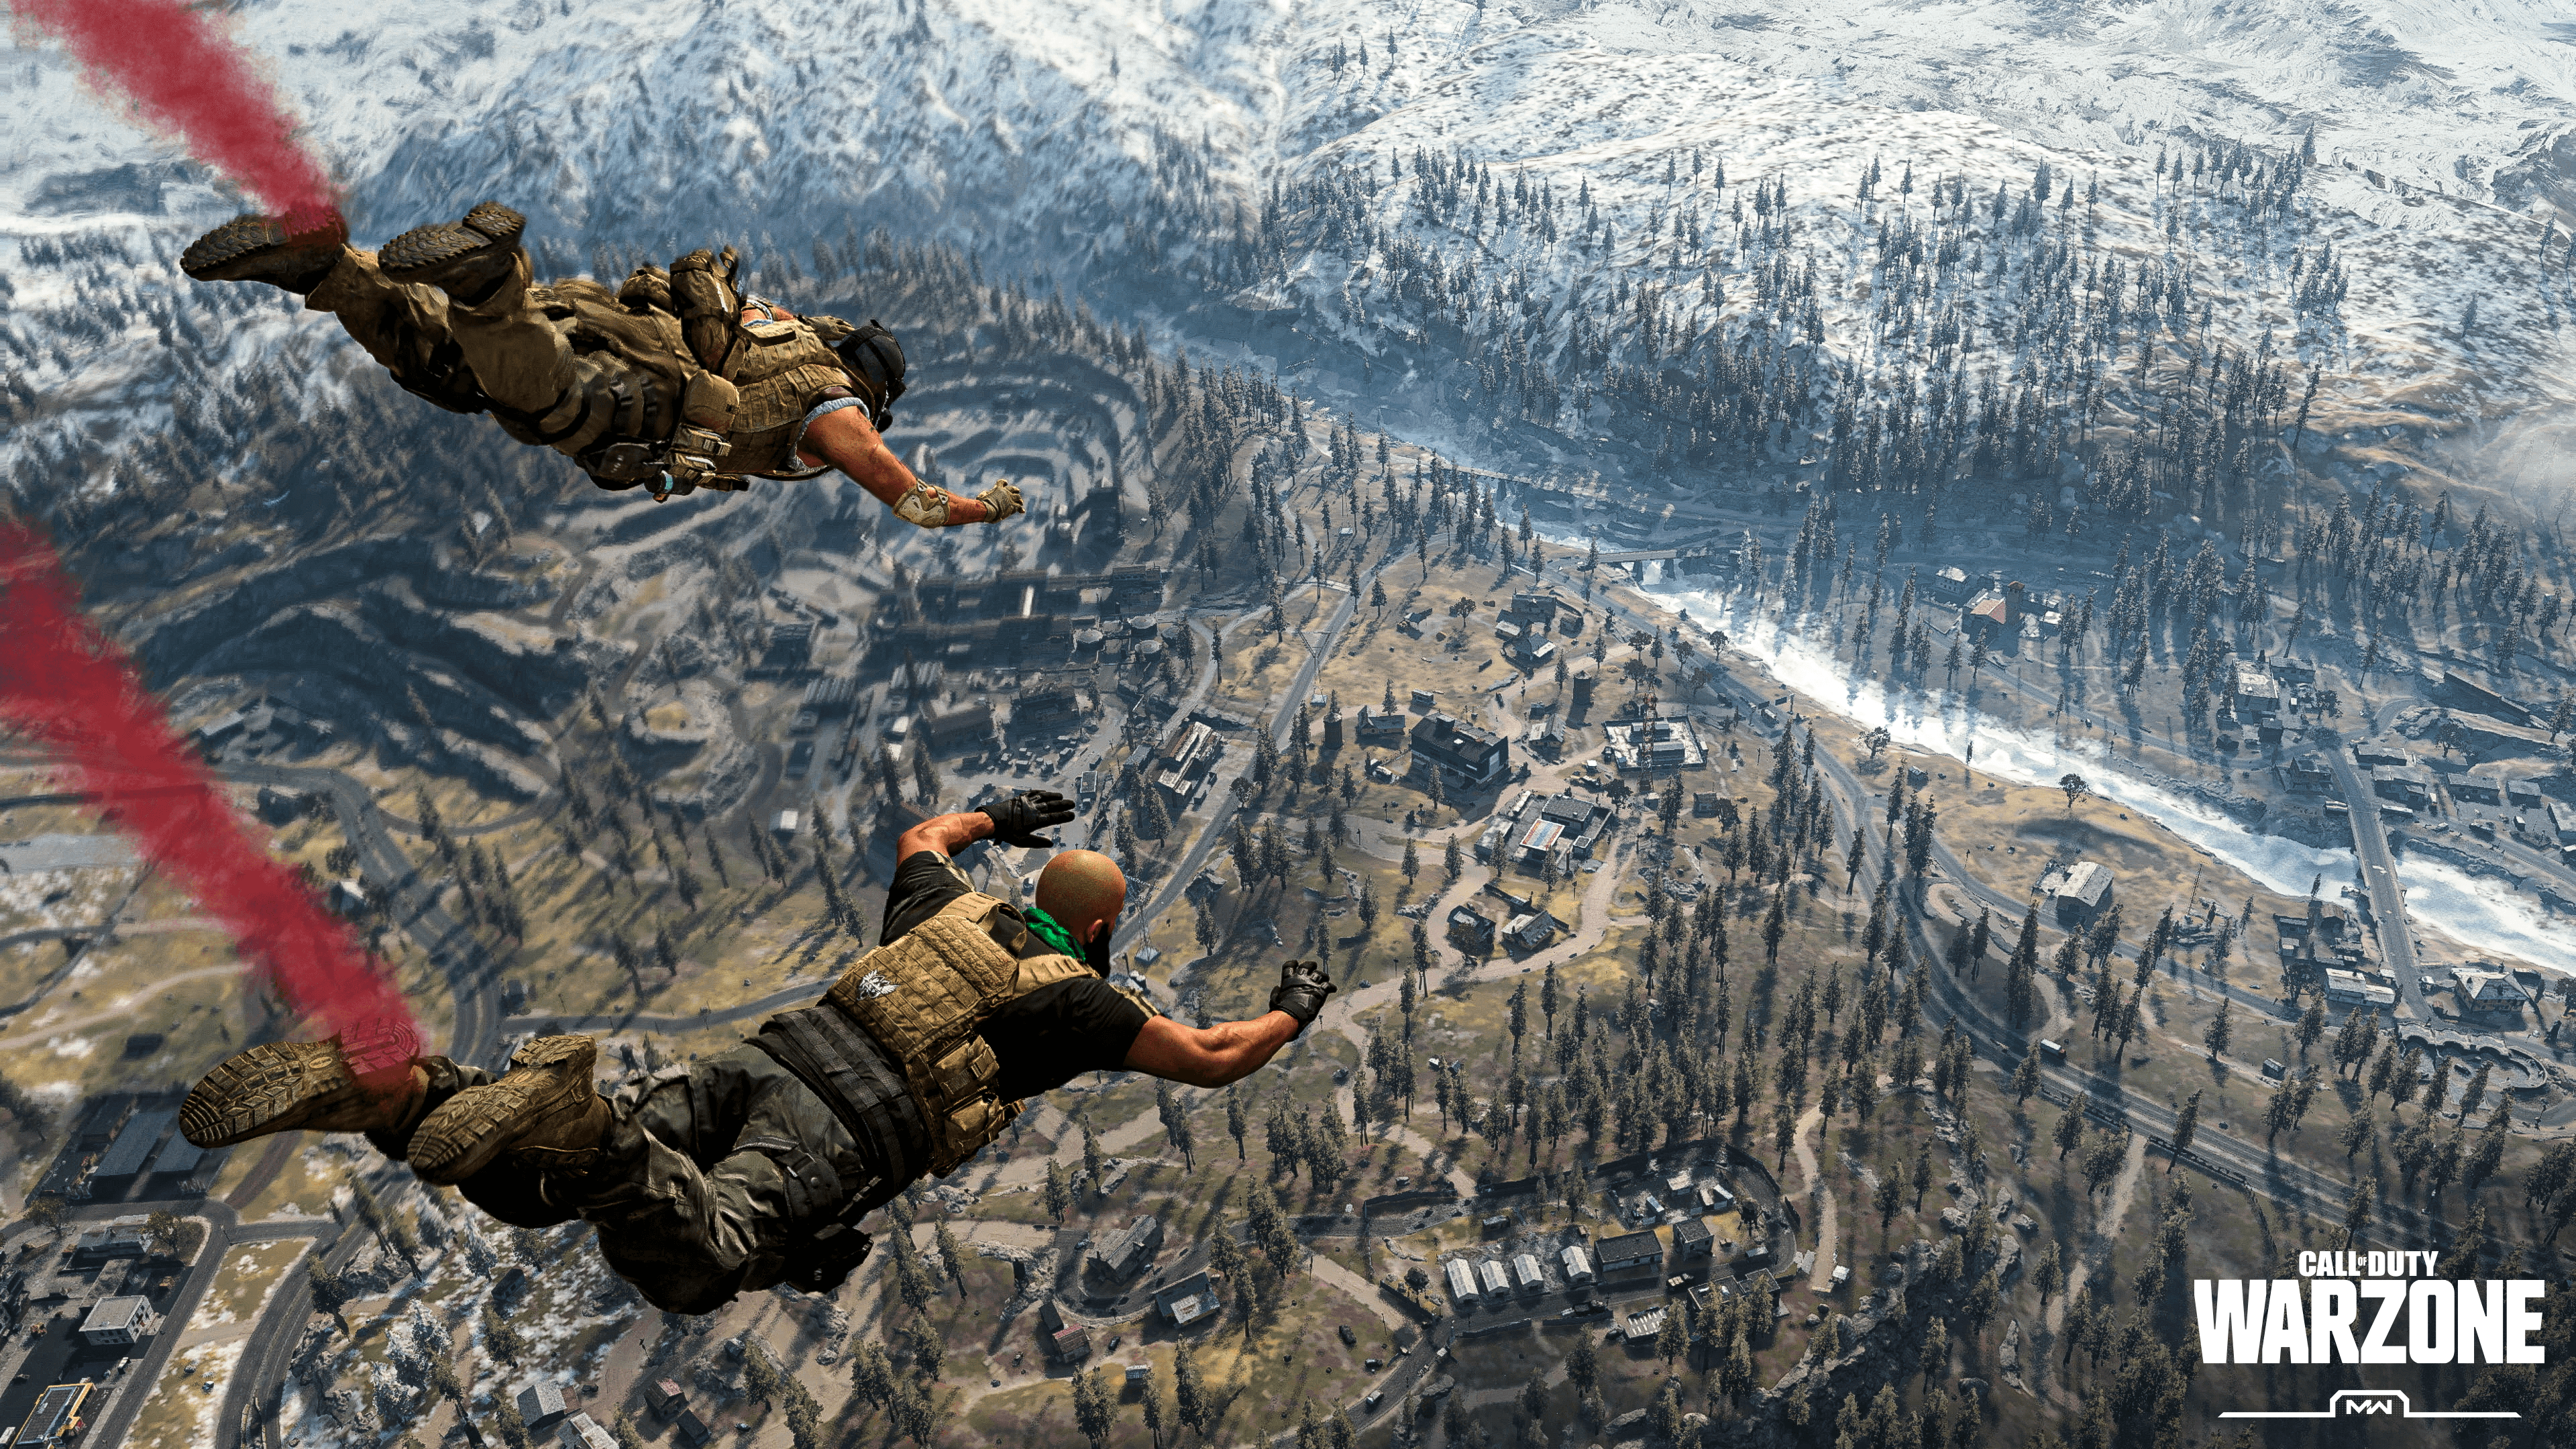 Two players skydiving in Call of Duty Warzone